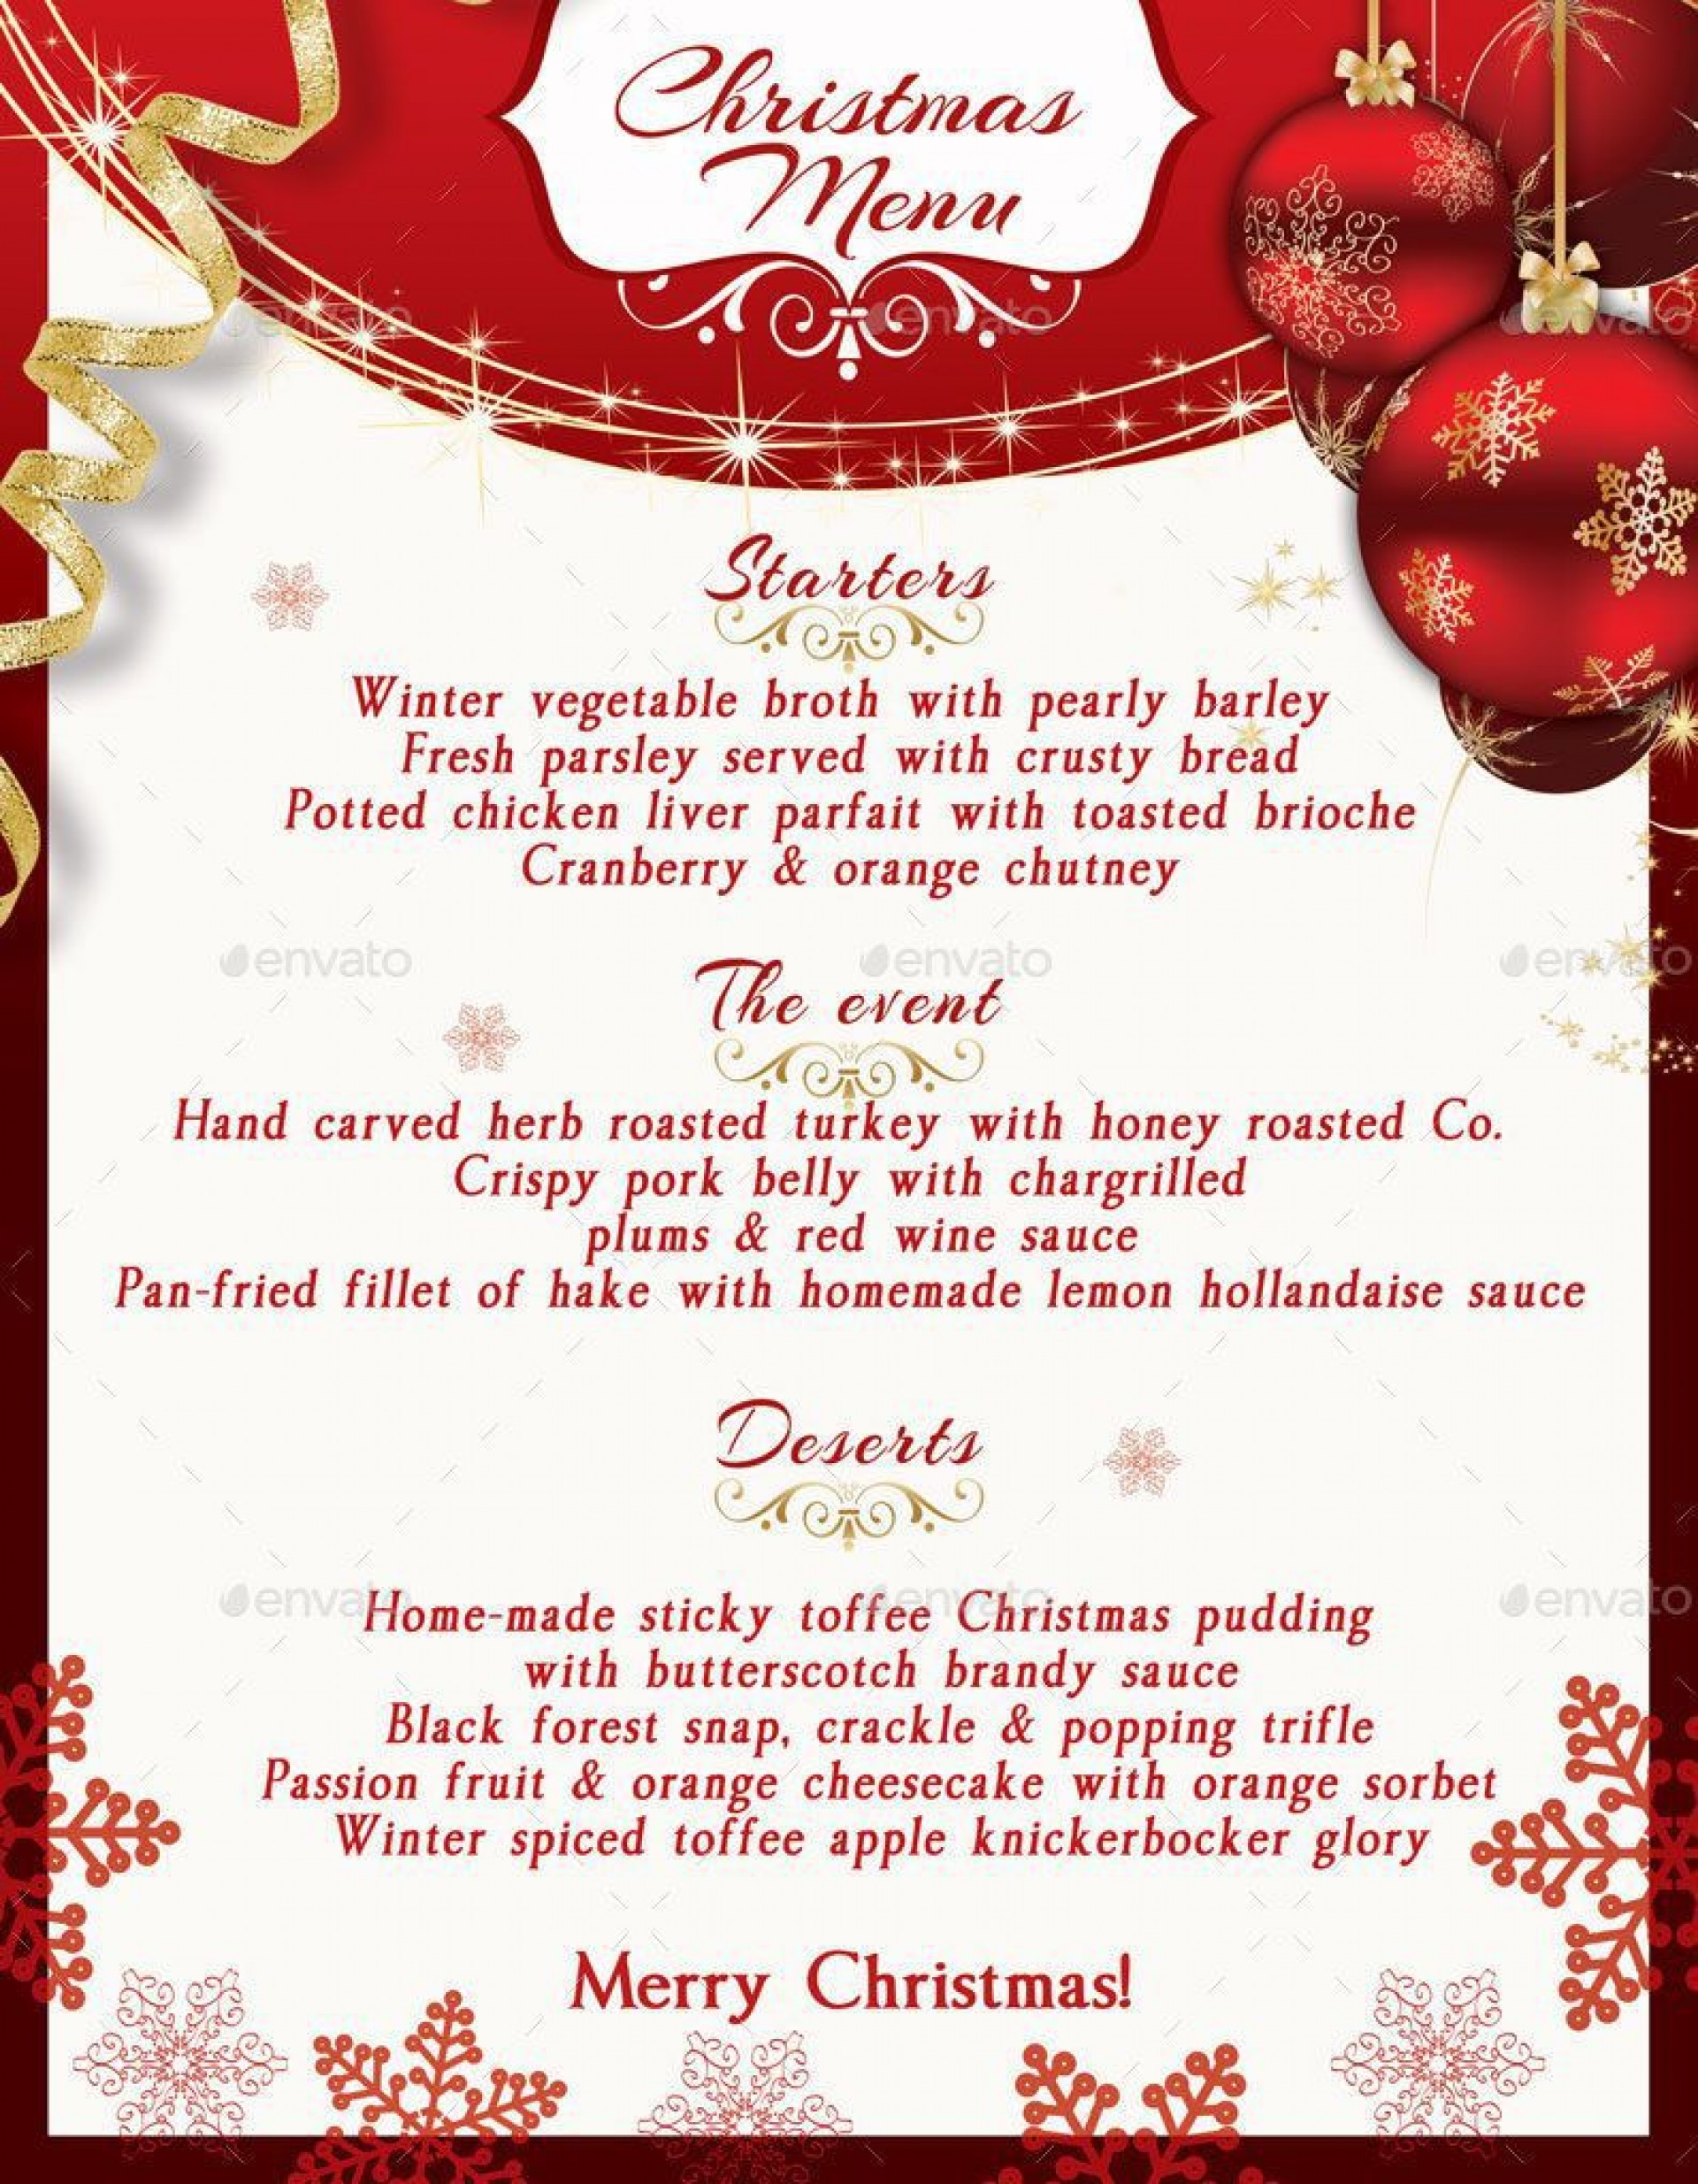 000 Exceptional Free Christma Template For Word Concept  Holiday Party Invitation Recipe Card Printable Stationery1920